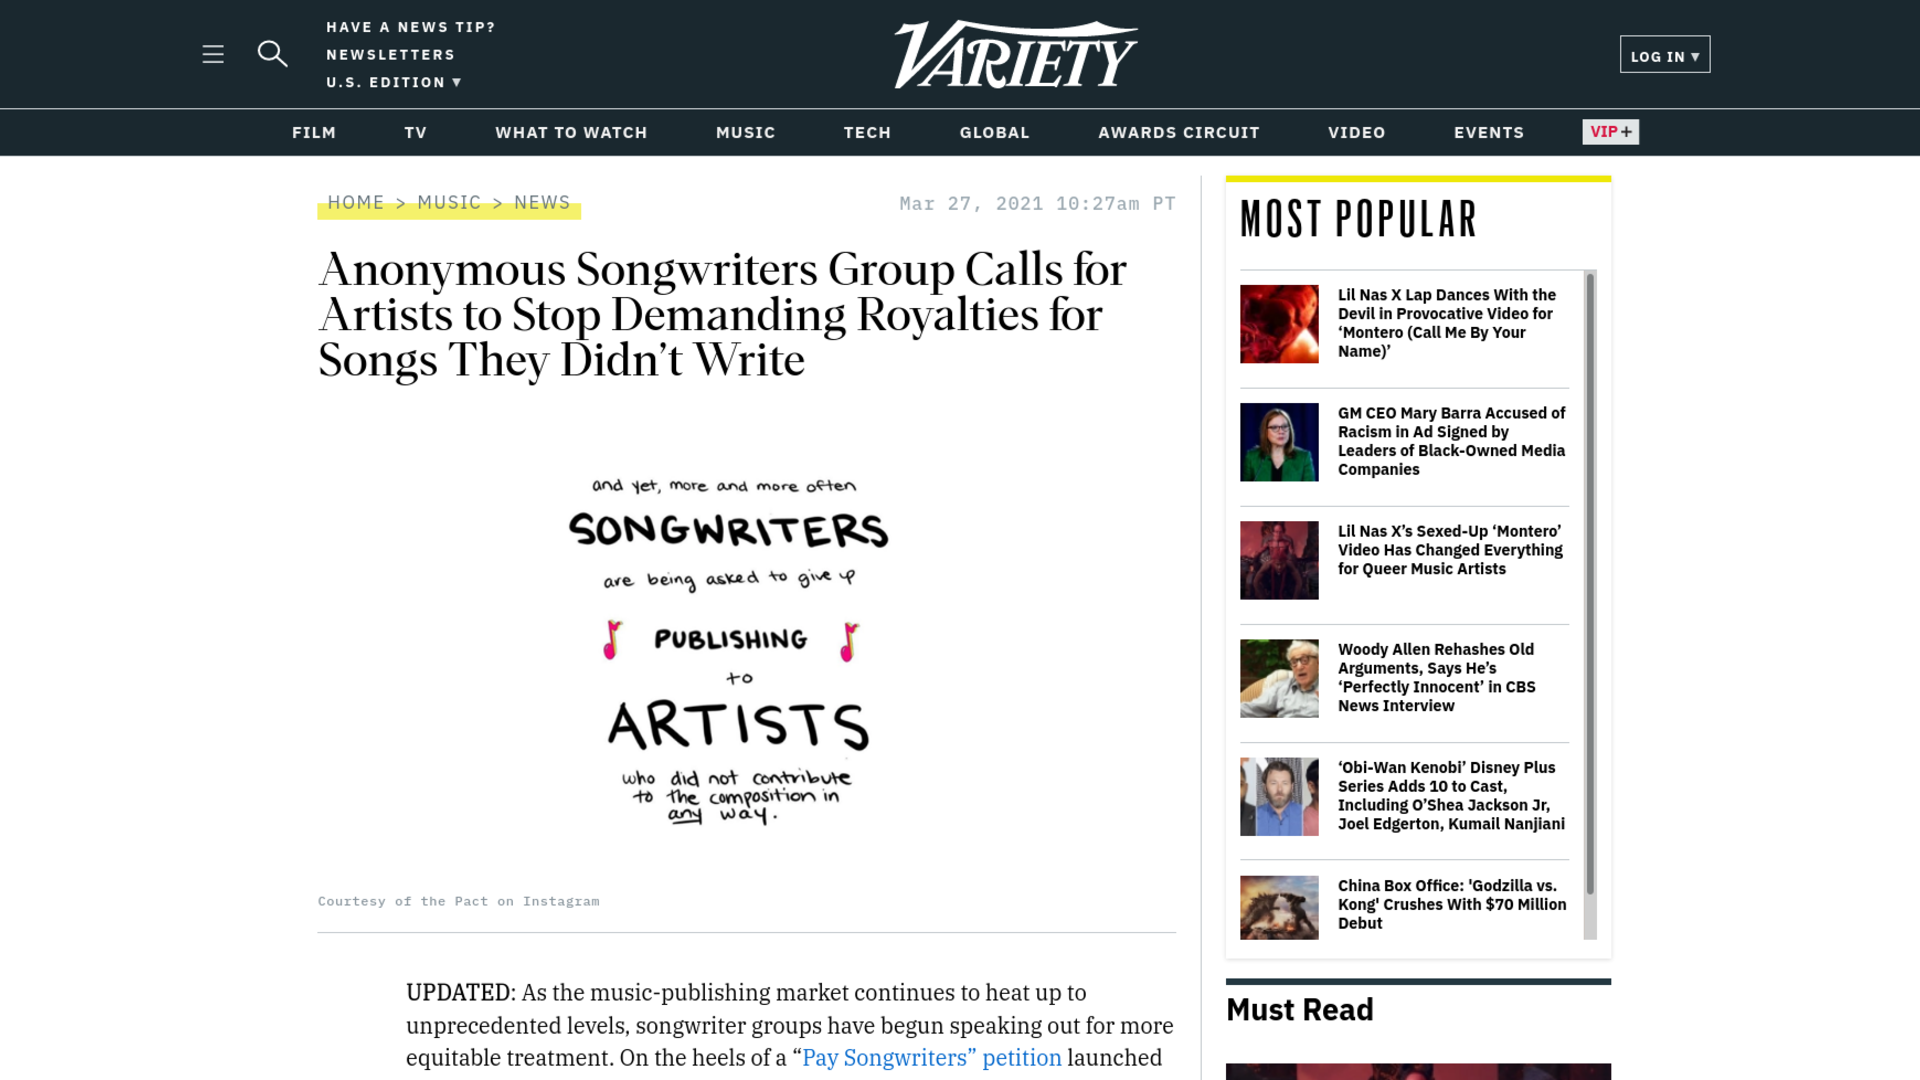 Fairness Rocks News Anonymous Songwriters Group Calls for Artists to Stop Demanding Royalties for Songs They Didn't Write